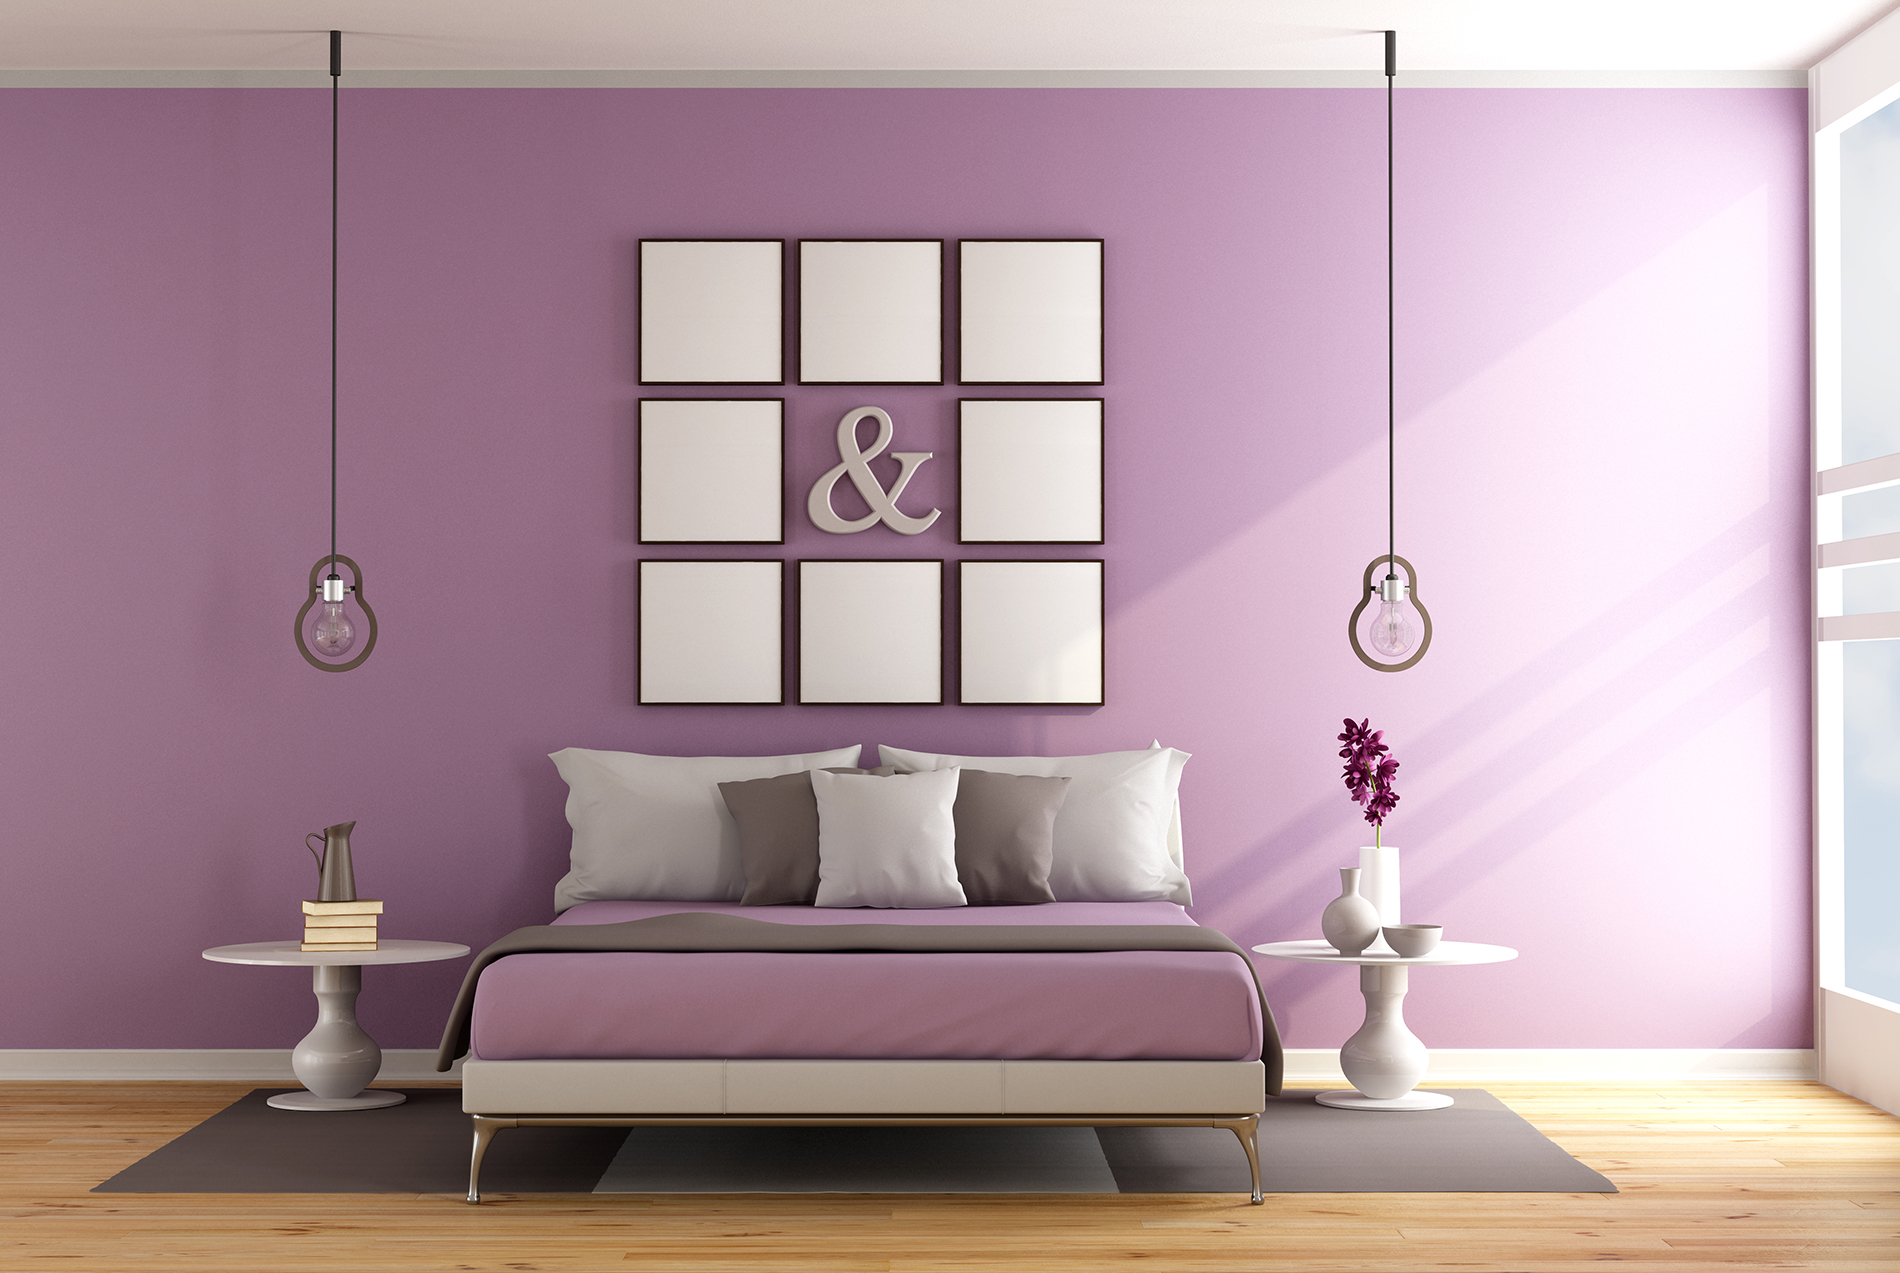 Bed and wall decoration paintings etc.  54024